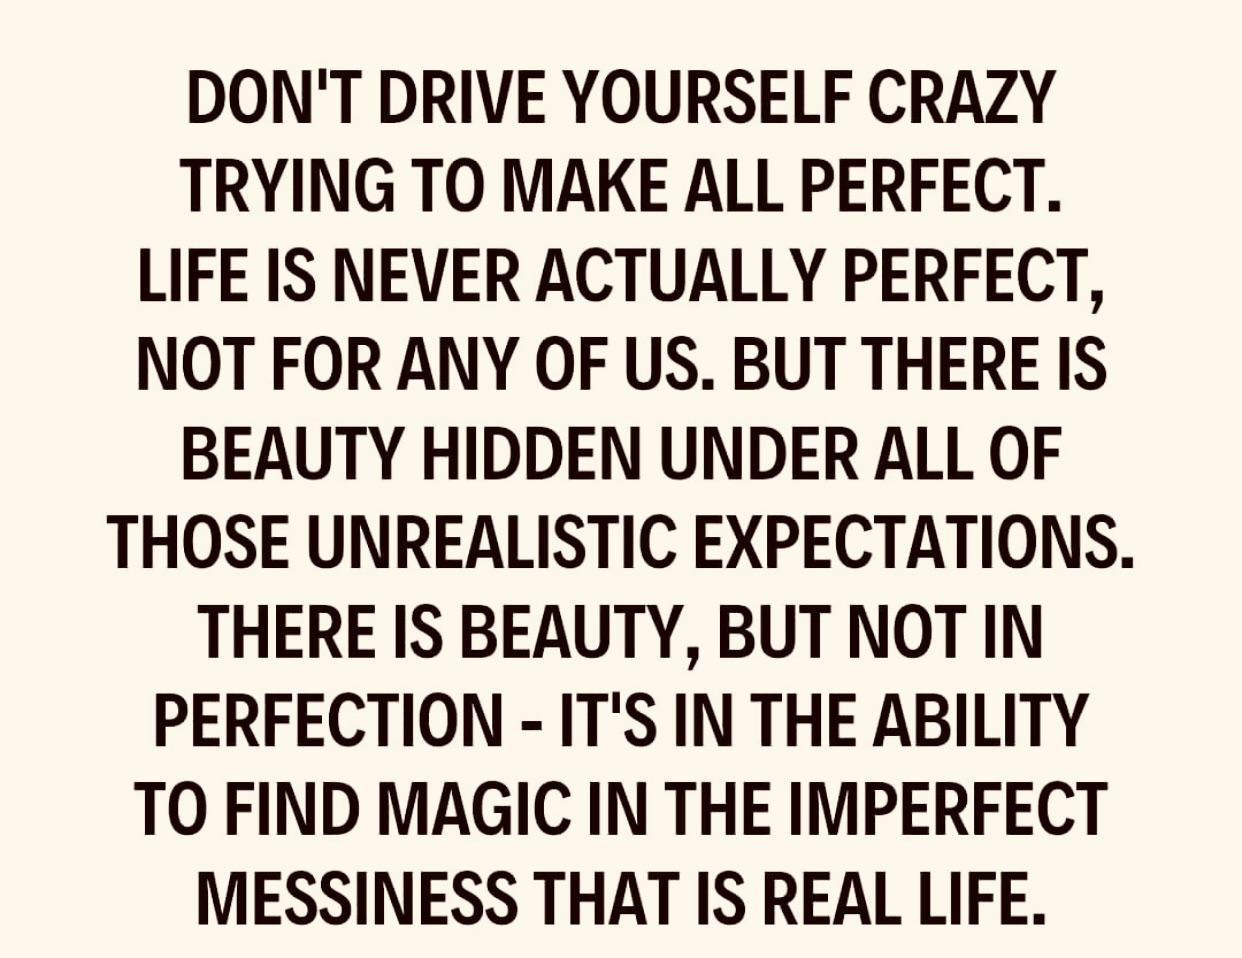 [Image] It's in the ability to find magic in the imperfect messiness that is real life. Don't drive yourself crazy trying to make all perfect.